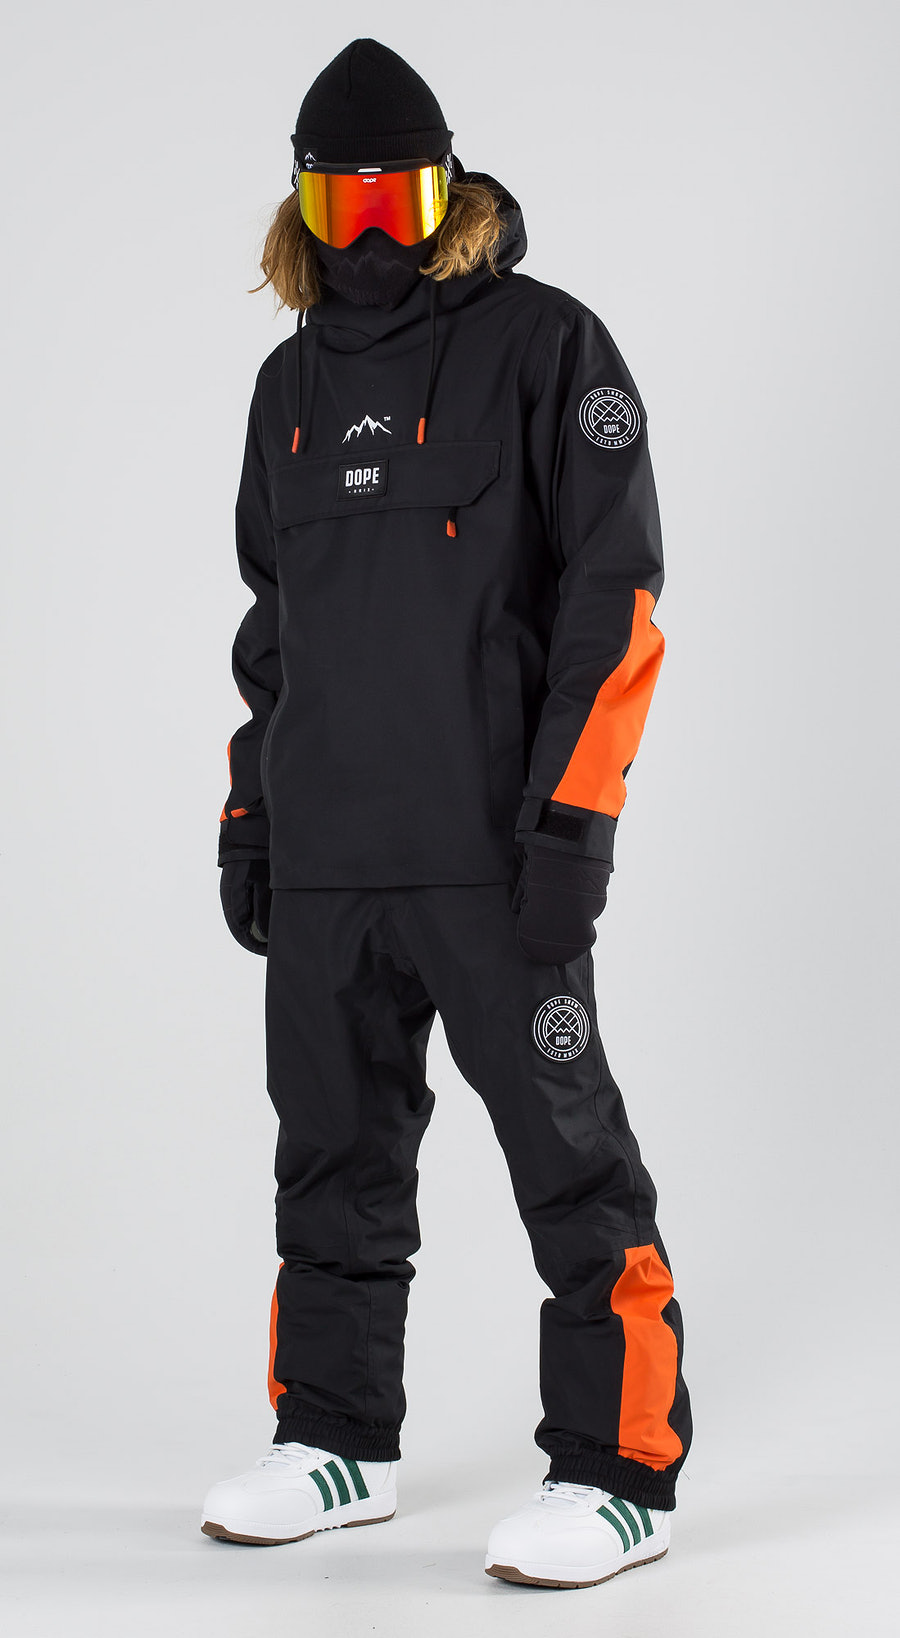 Dope Blizzard LE Black Orange Snowboard clothing Multi